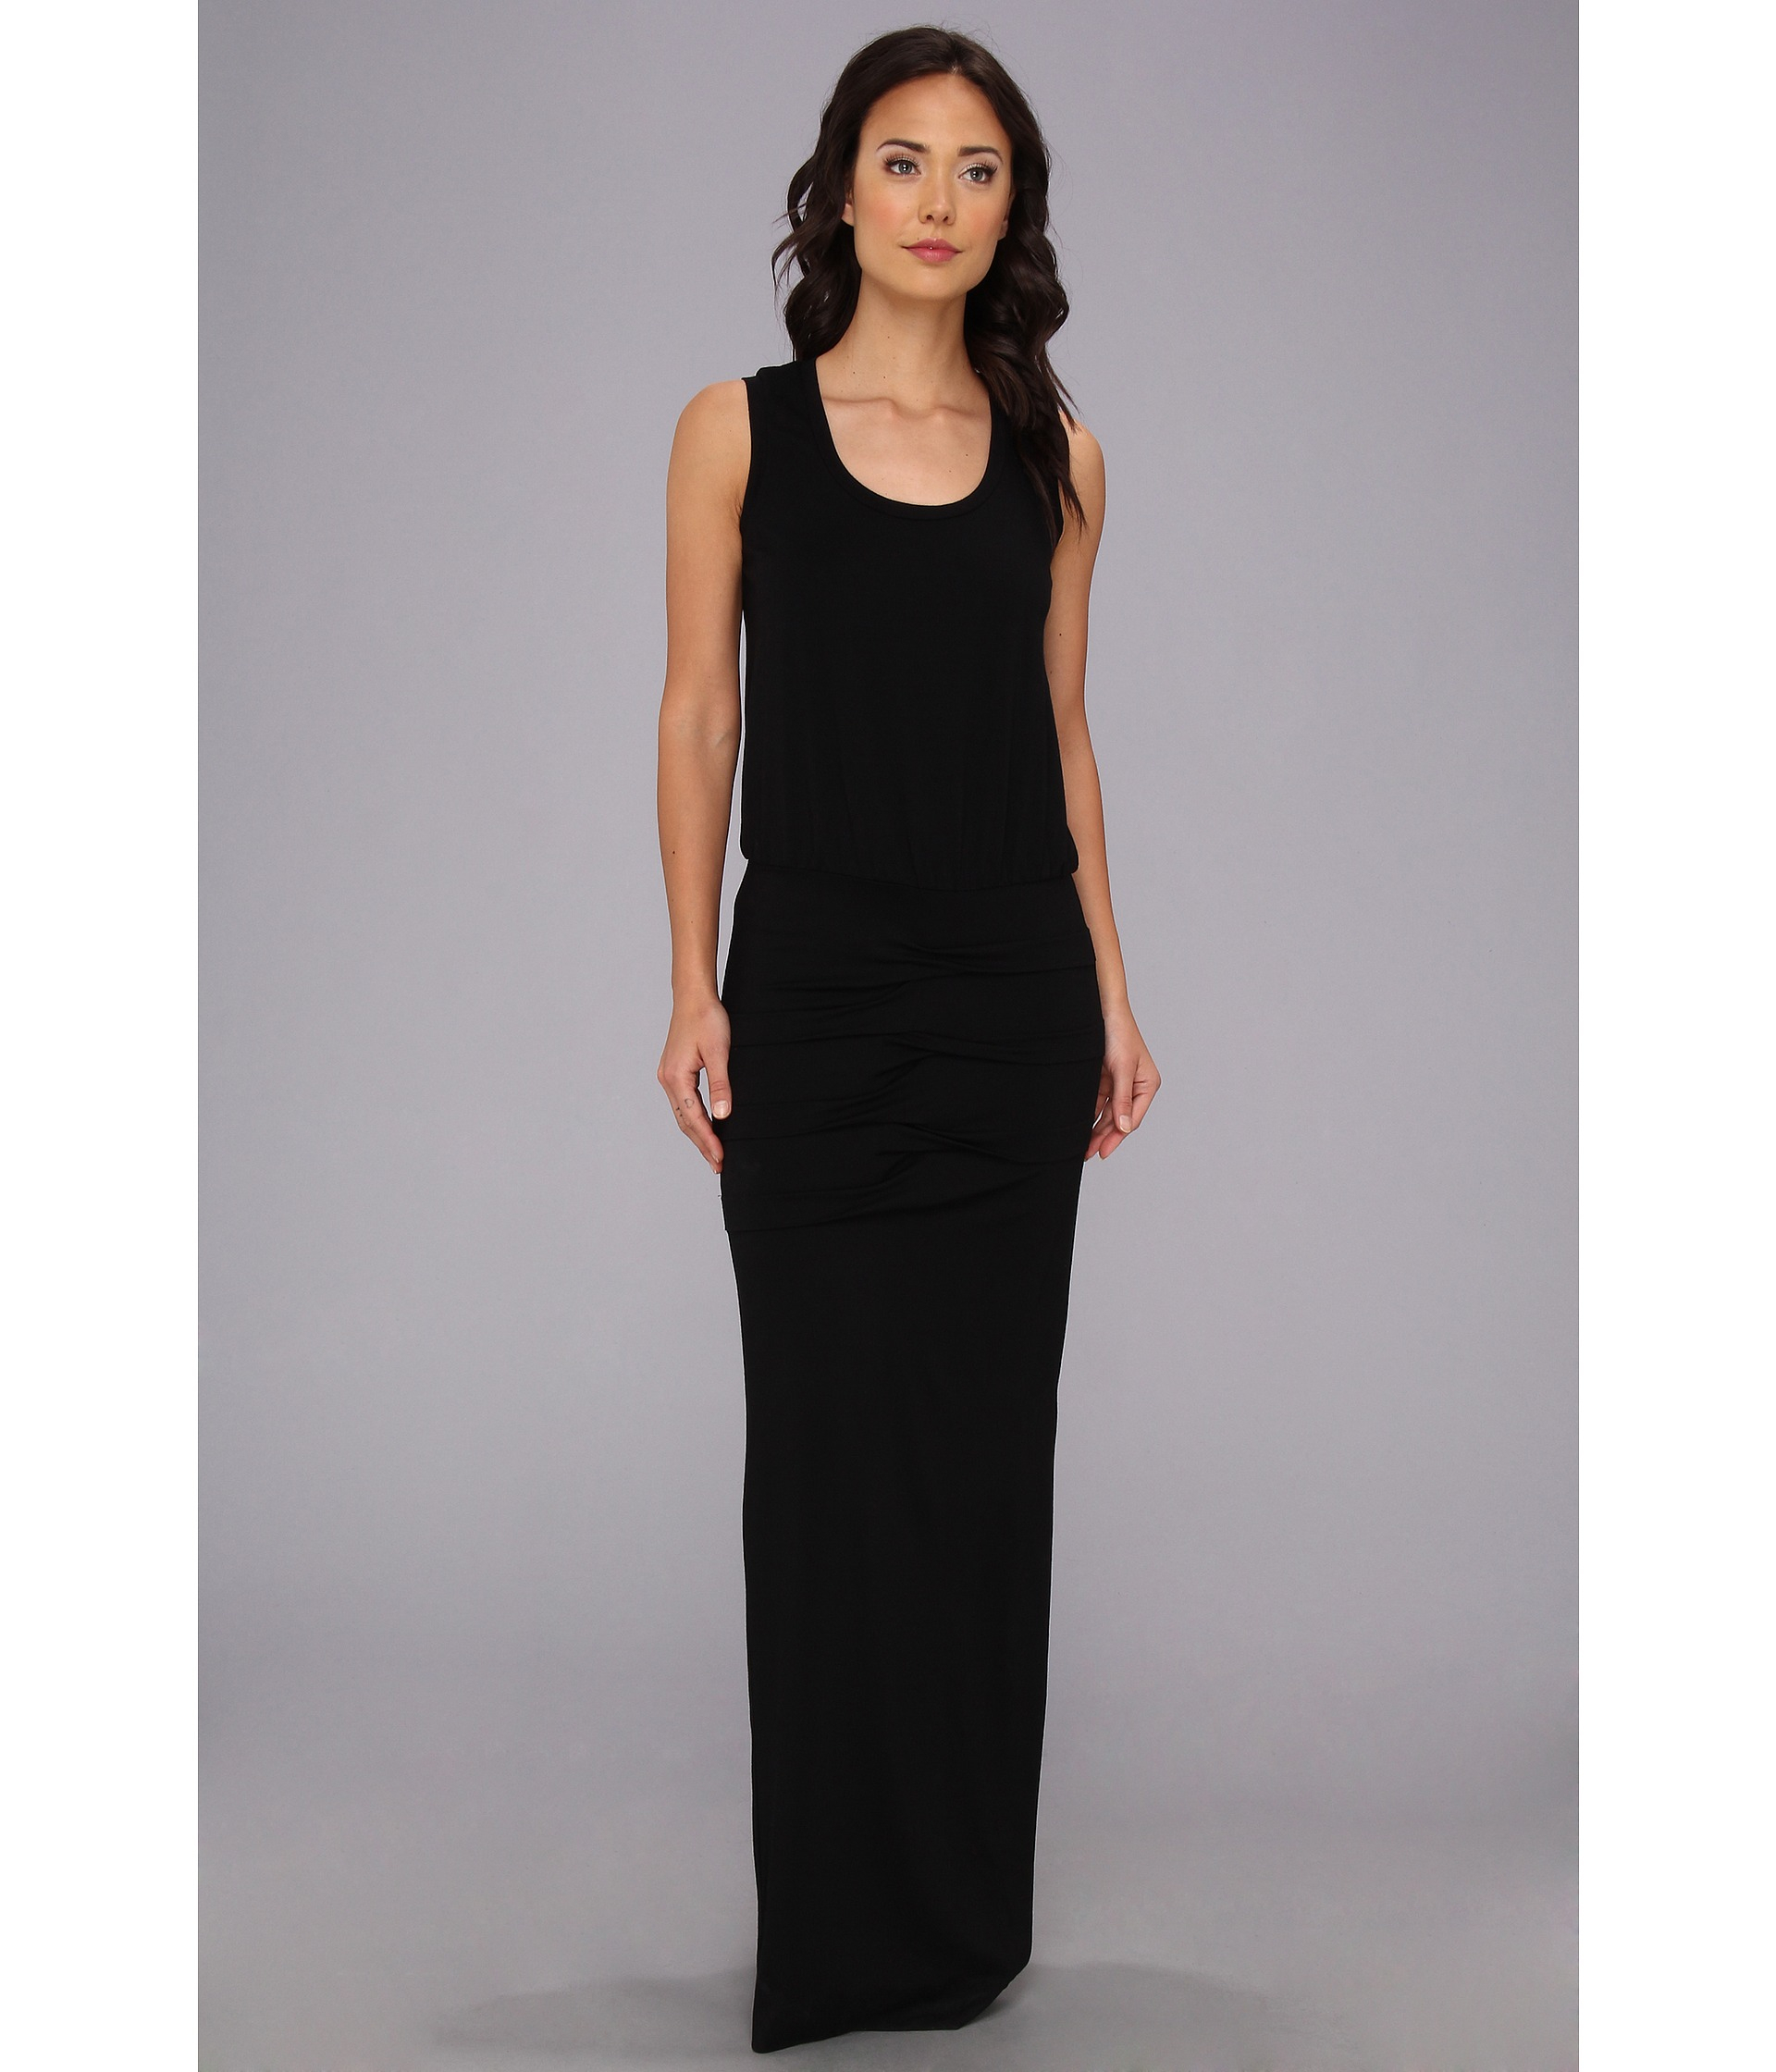 Nicole miller Blouson Jersey Maxi Dress in Black | Lyst